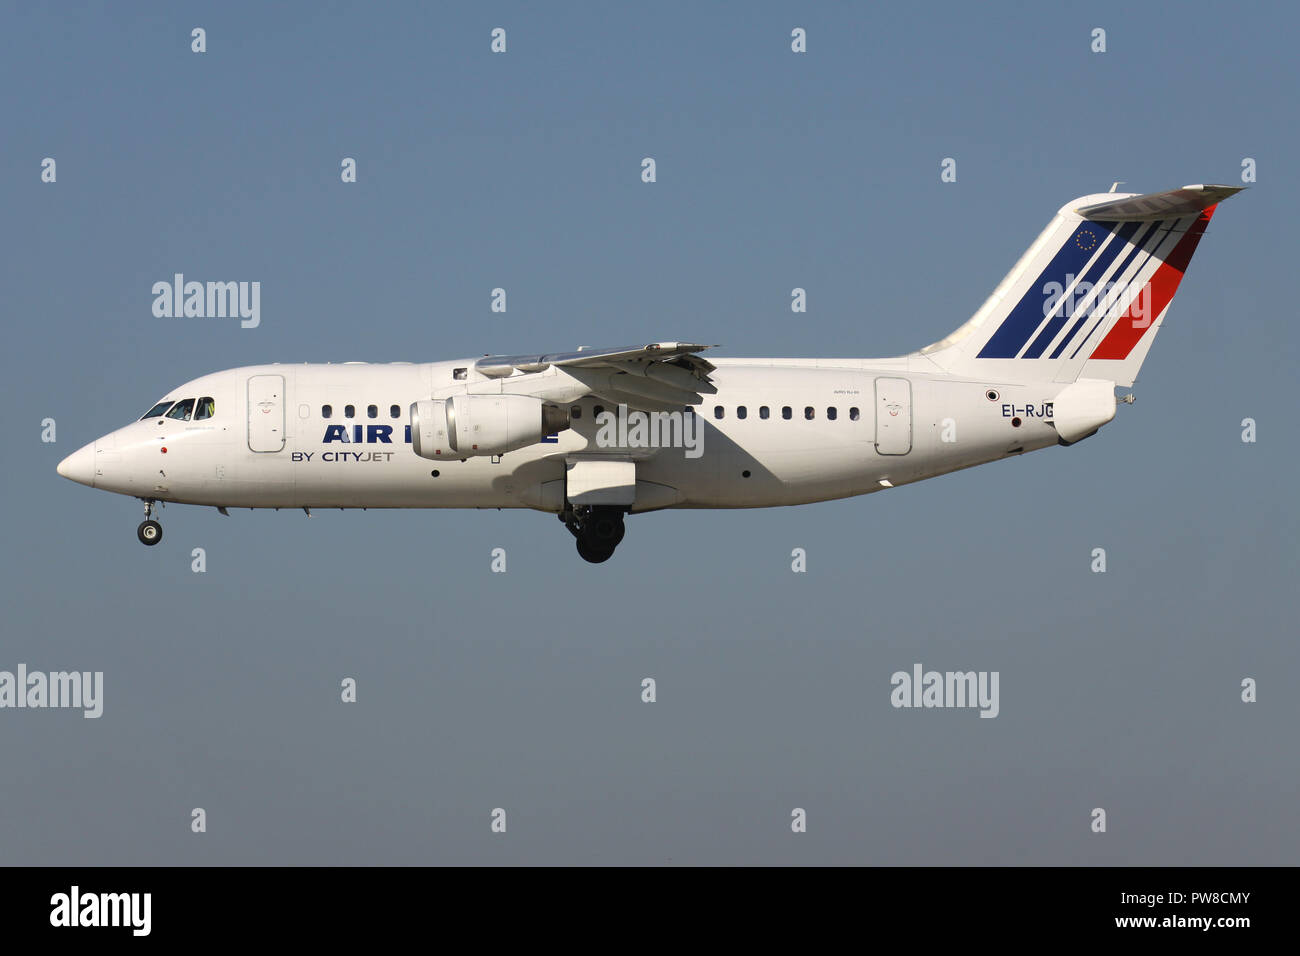 CityJet Avro RJ85 in old Air France livery with registration EI-RJG on short final for runway 14 of Zurich Airport. - Stock Image